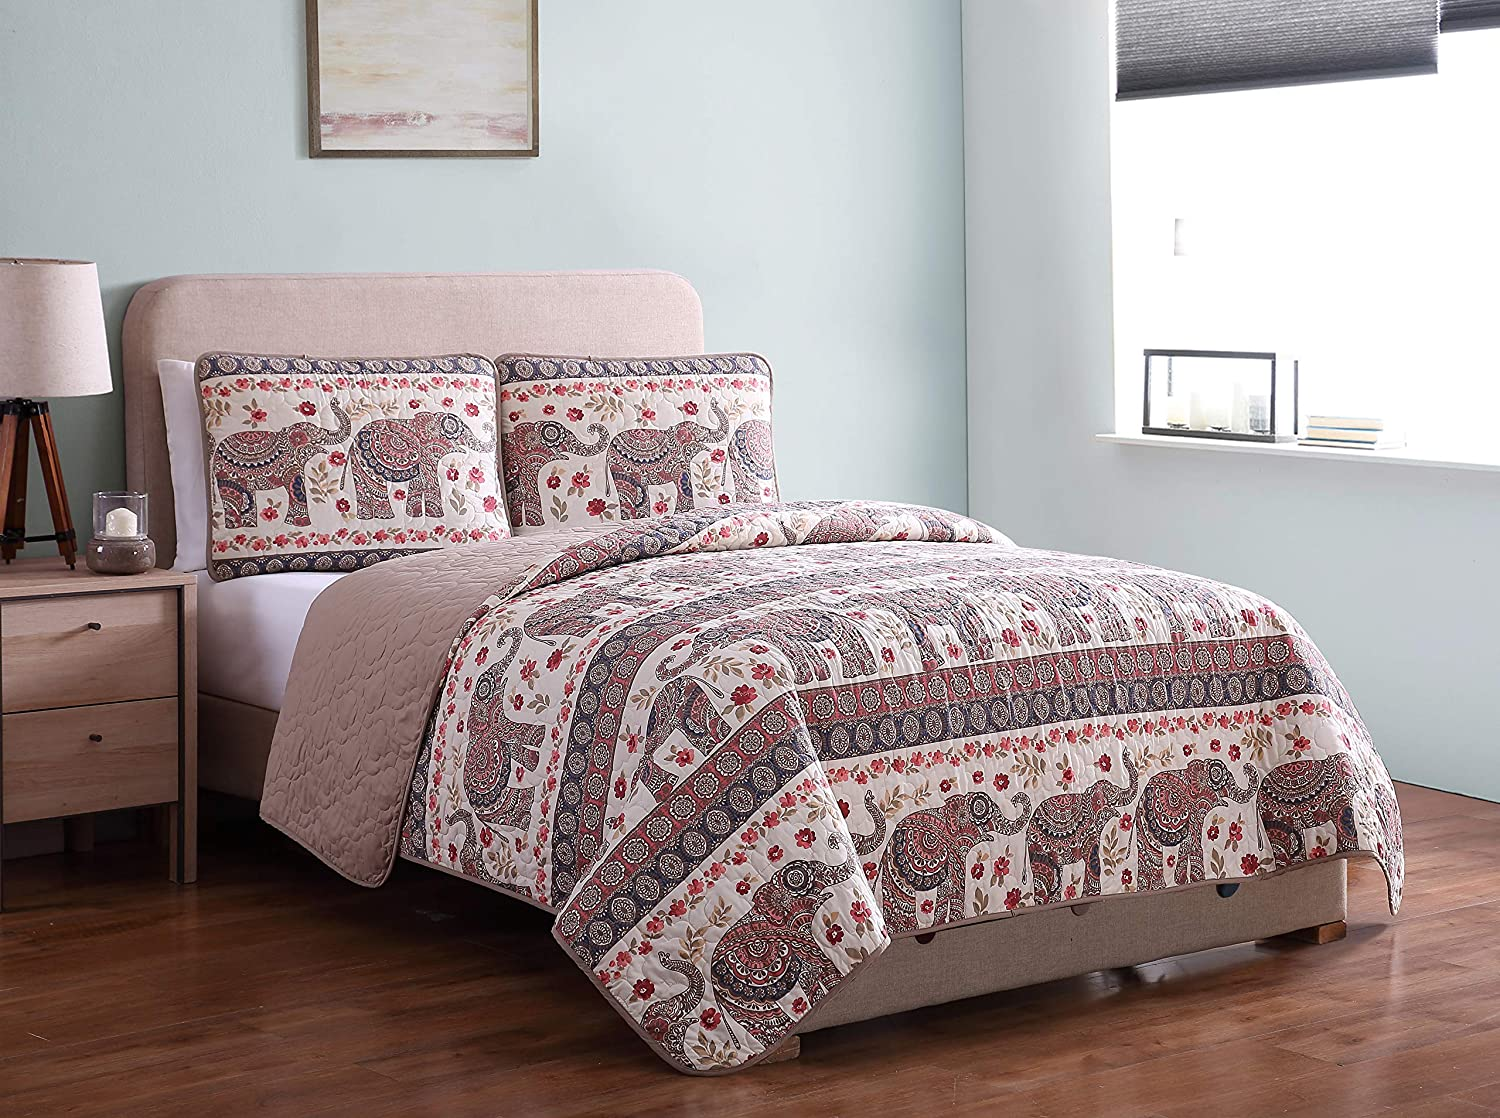 Amazon Com Morgan Home Printed 3 Piece Reversible Quilt Set With Shams All Season Comfort Available In Colors Sizes Beige Elephant Twin Kitchen Dining